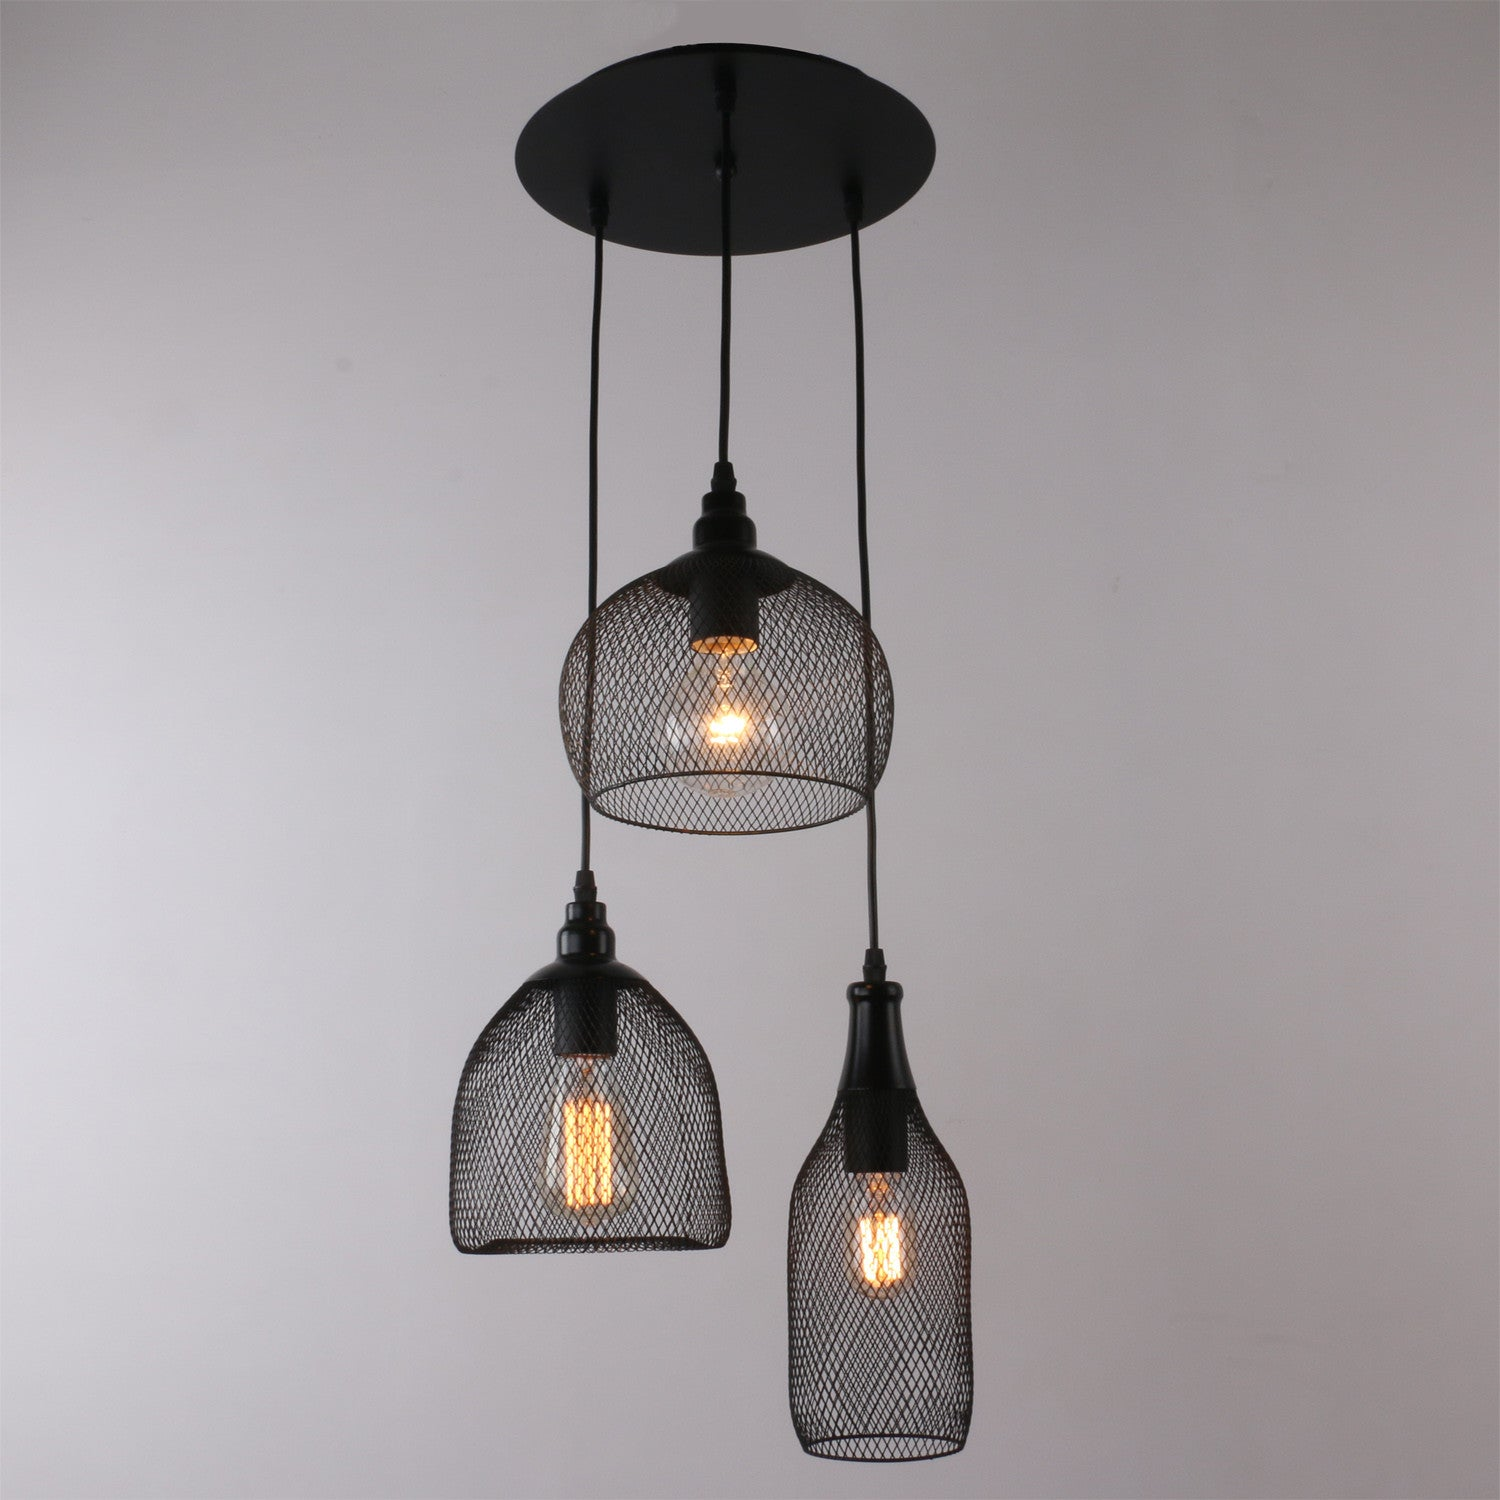 Unitary brand antique black metal nets shade multi pendant lighting unitary brand antique black metal nets shade multi pendant lighting with 3 lights painted finish aloadofball Images